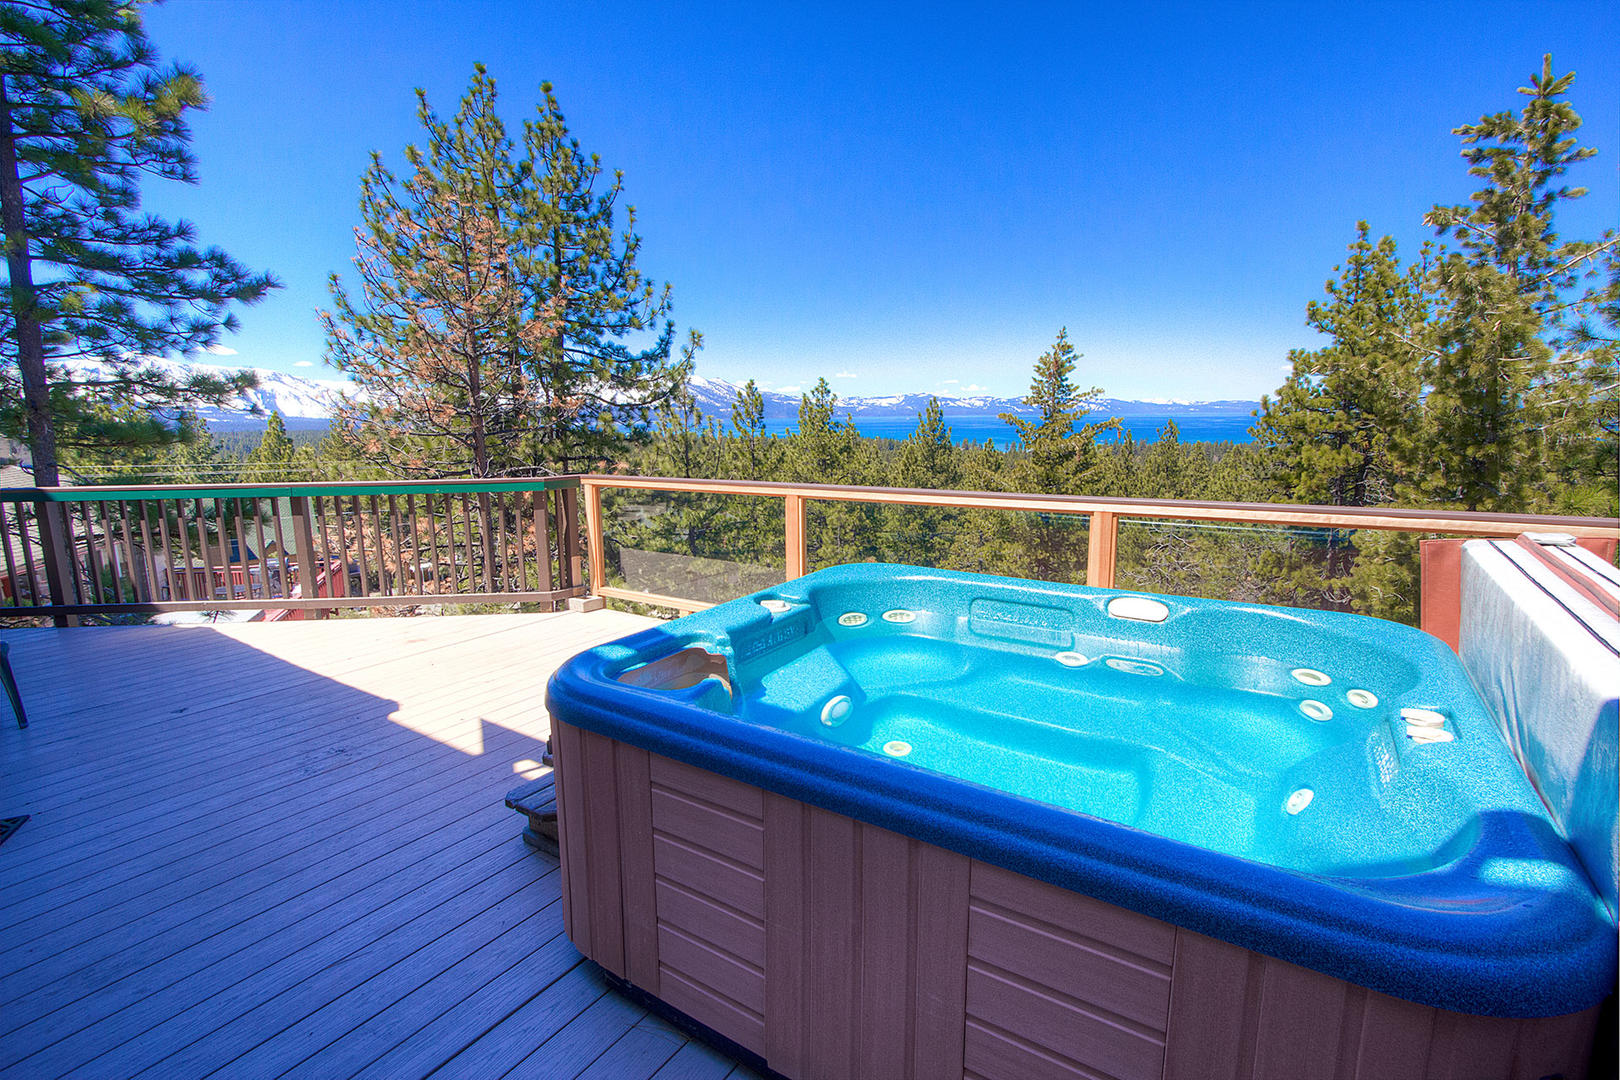 hch1475 hot tub